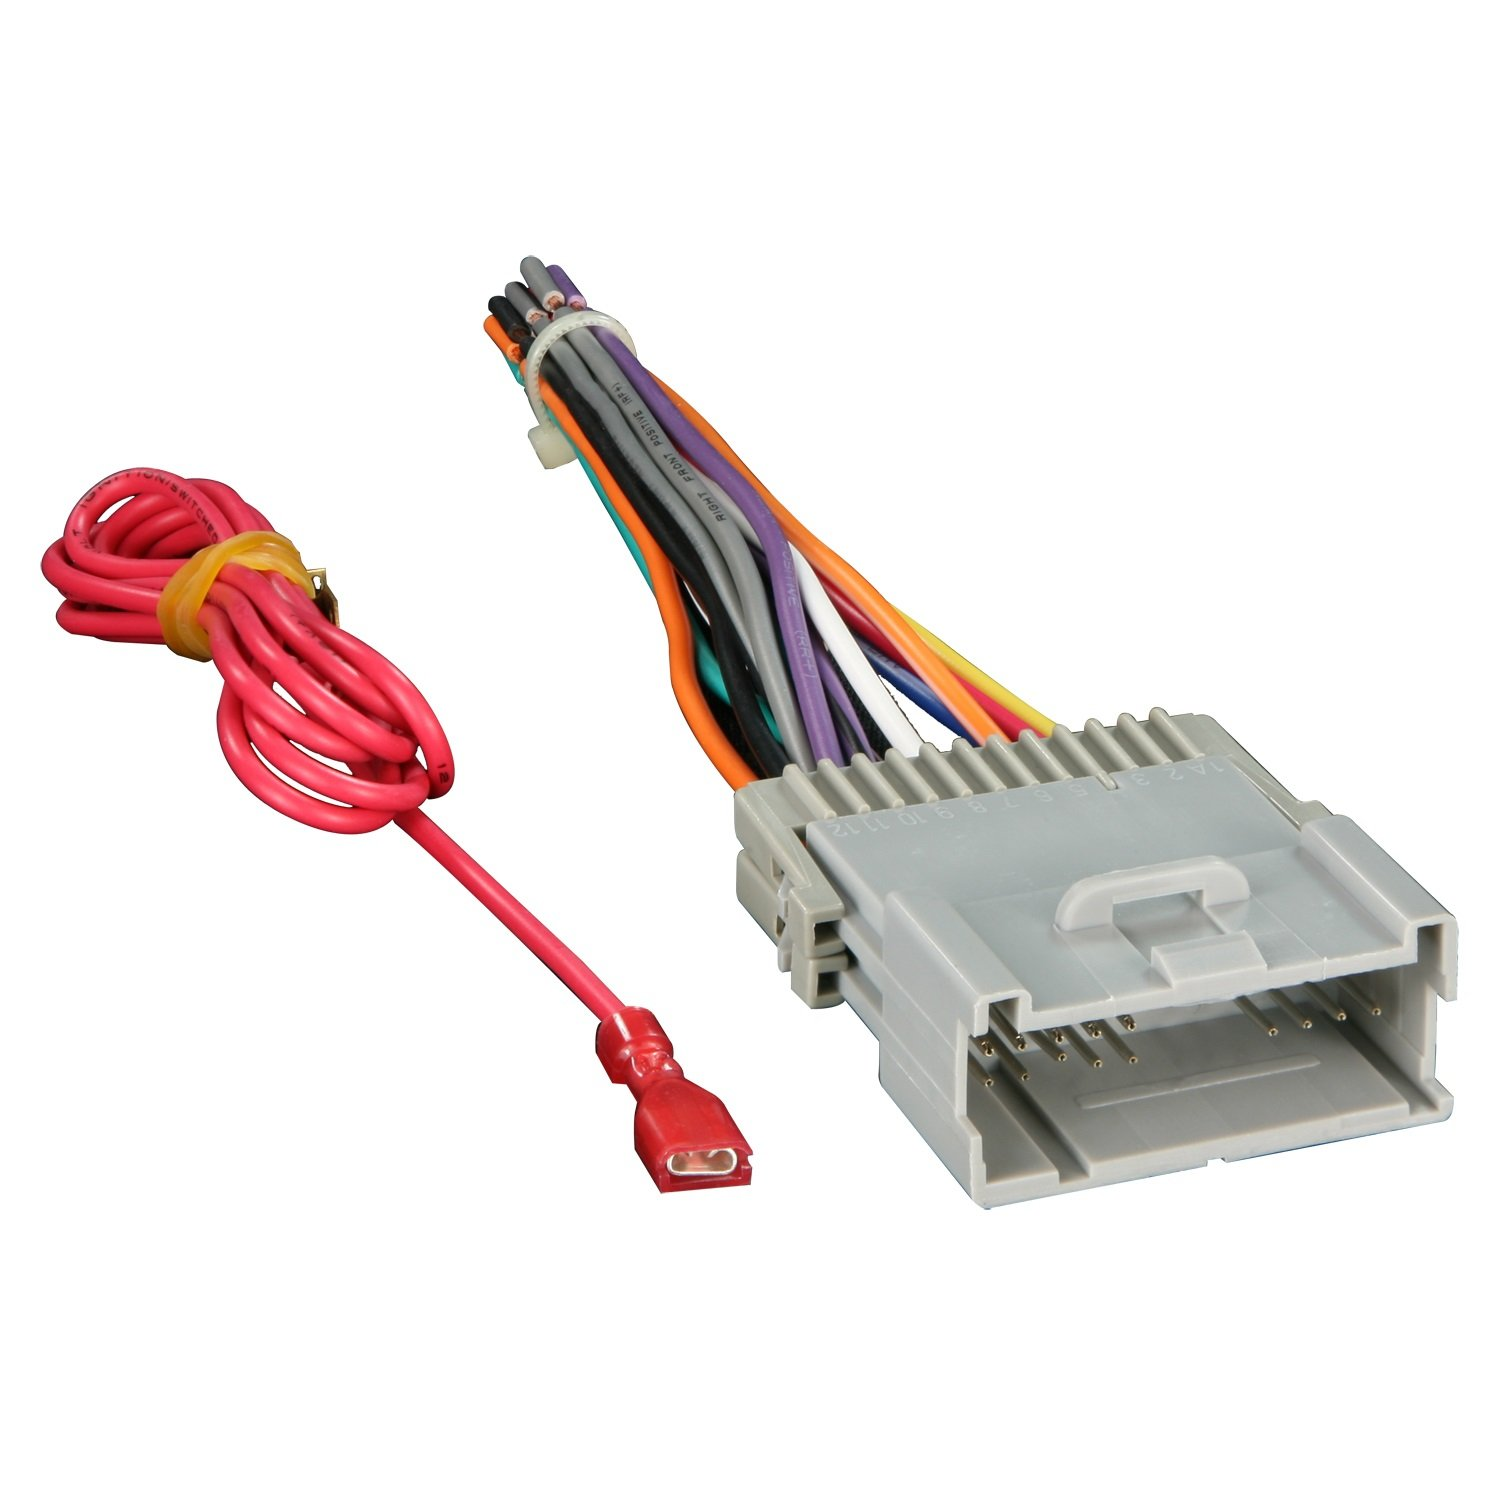 61eewxp9orL._SL1500_ amazon com metra 70 2003 radio wiring harness for gm 98 08 metra radio wiring harness at edmiracle.co